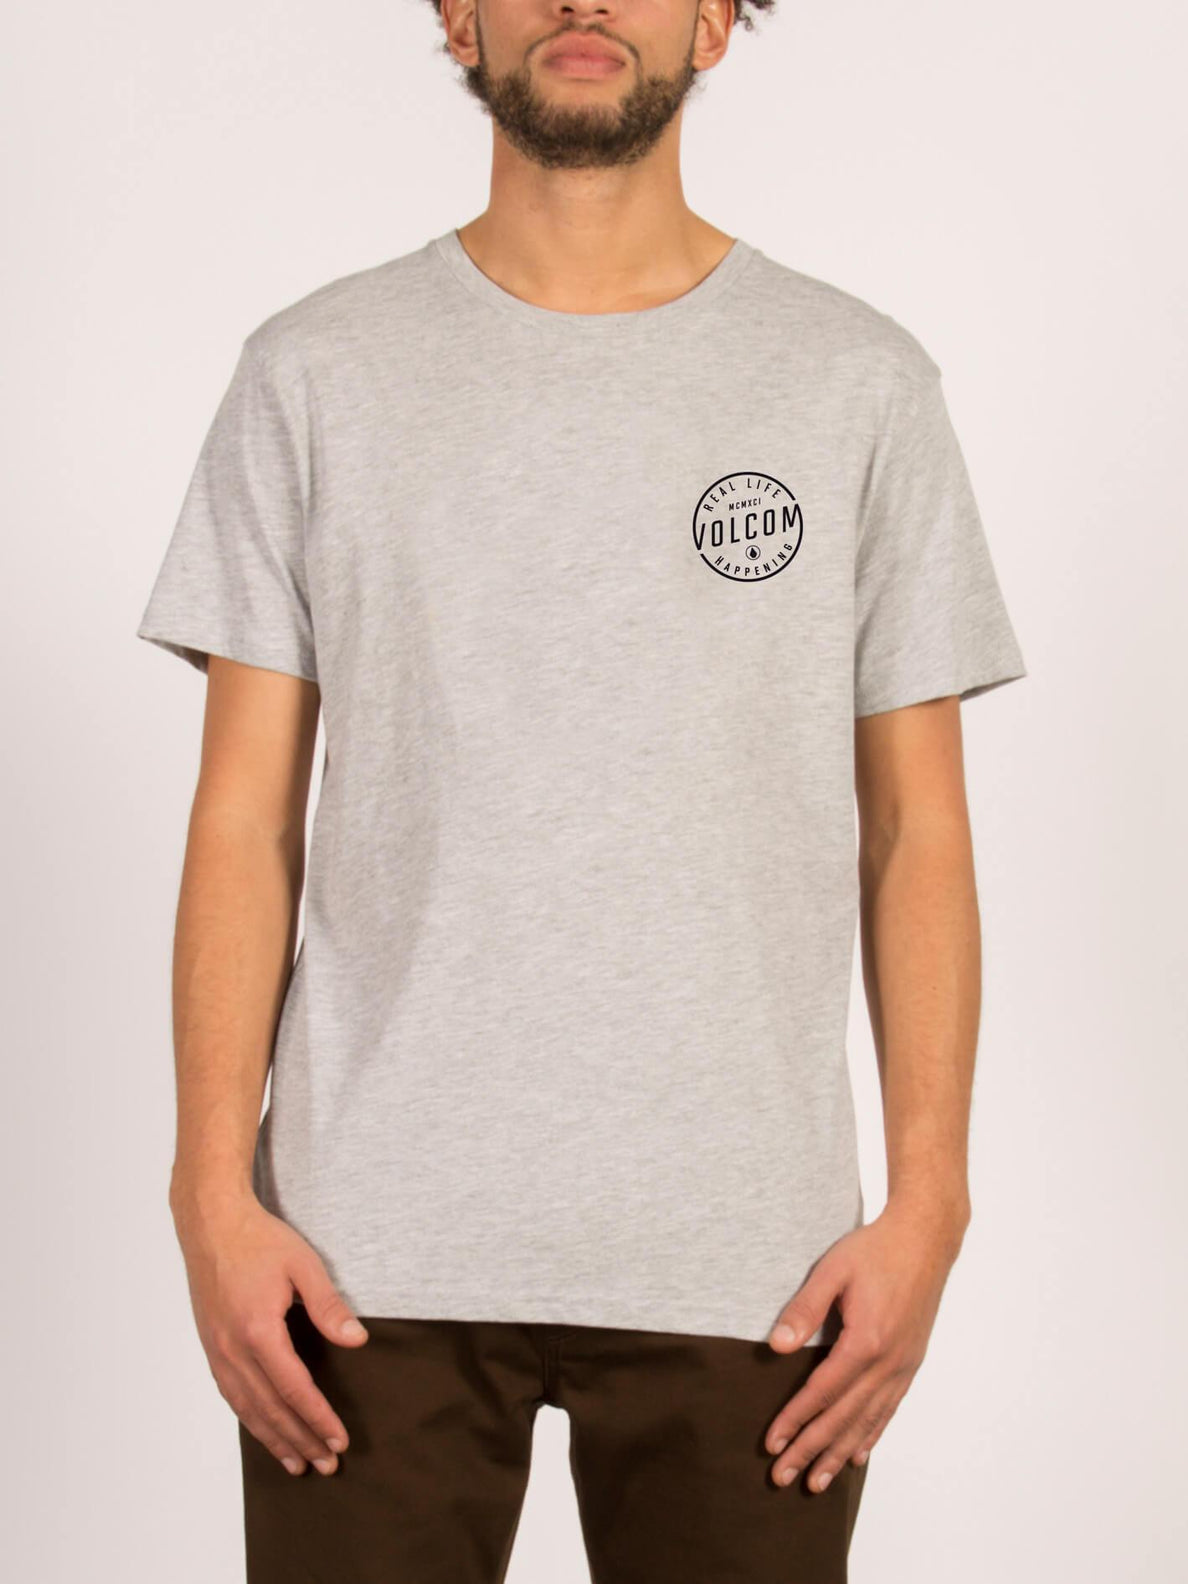 ON LOCK BSC SS HEATHER GREY